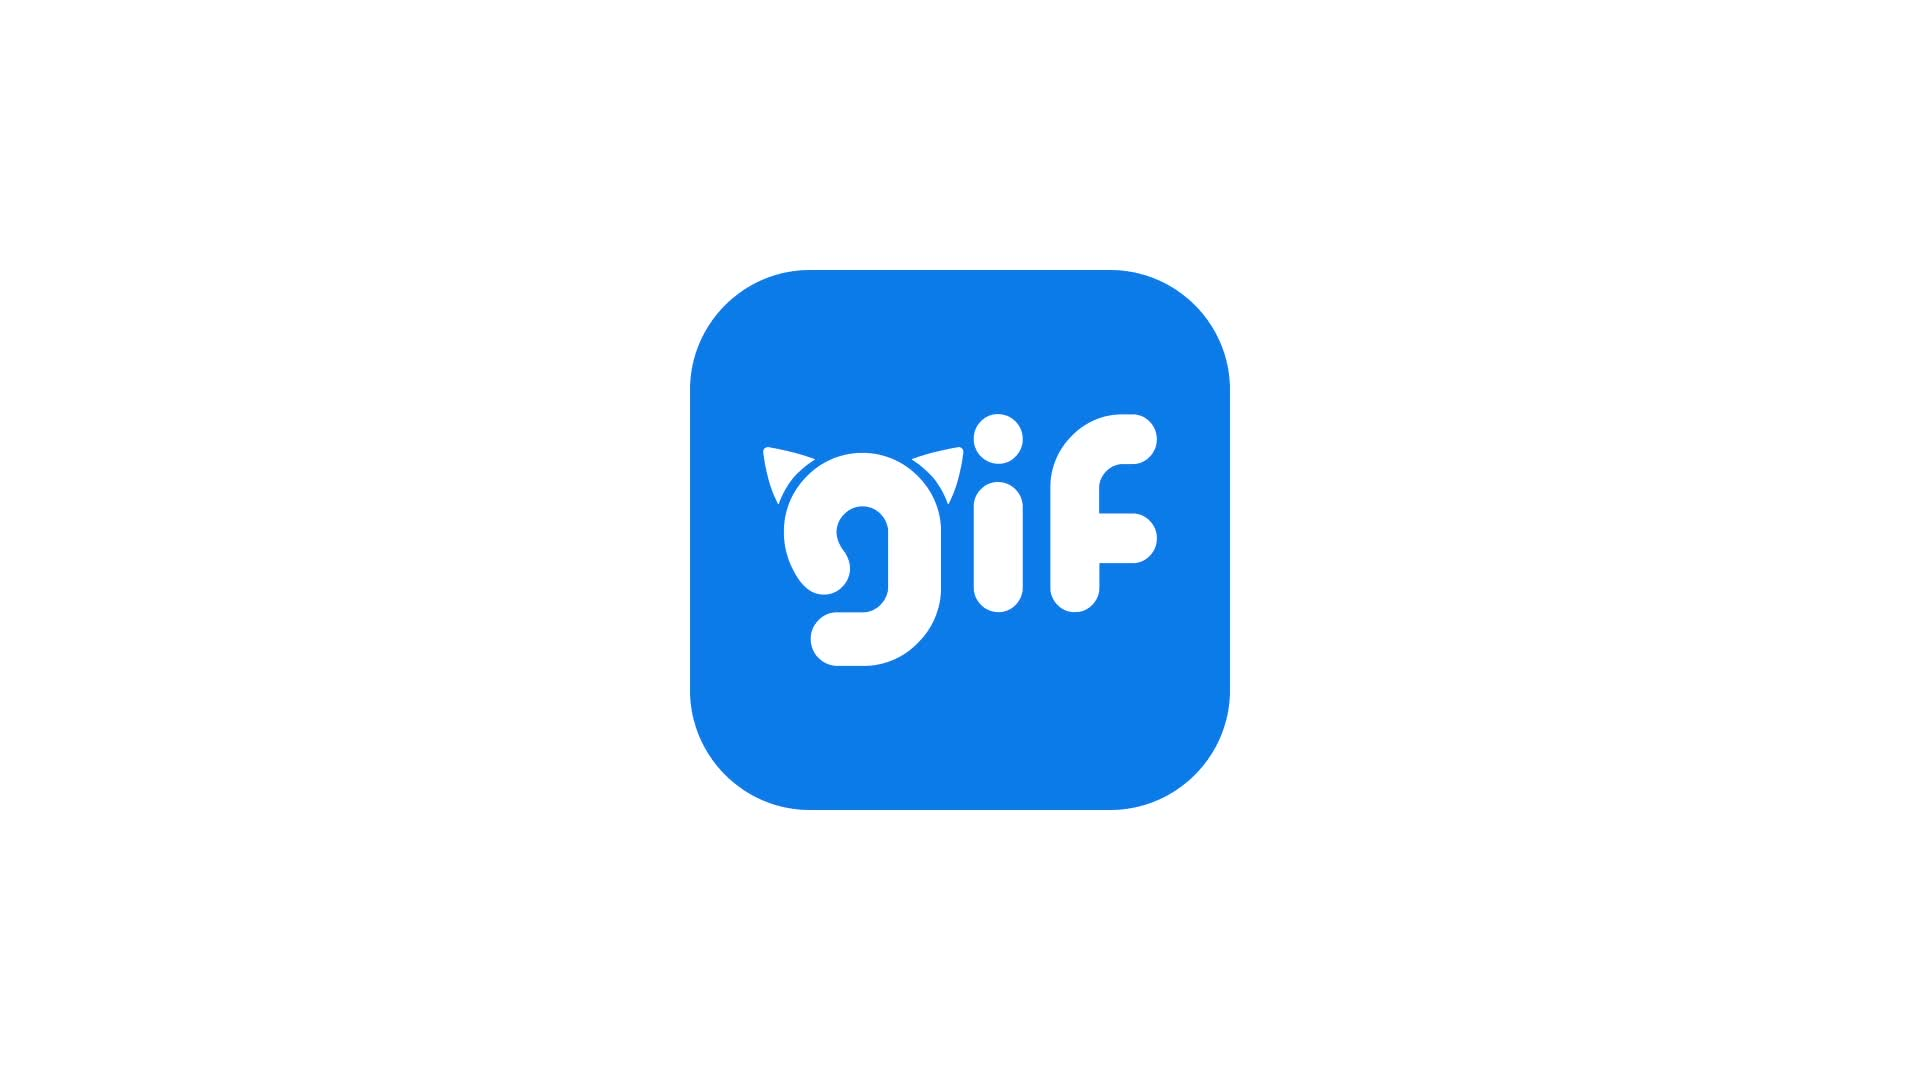 Gfycat, Gfycat Loops, iMessage, iOS, iPhone, Gfycat iOS app with iMessage extension GIFs